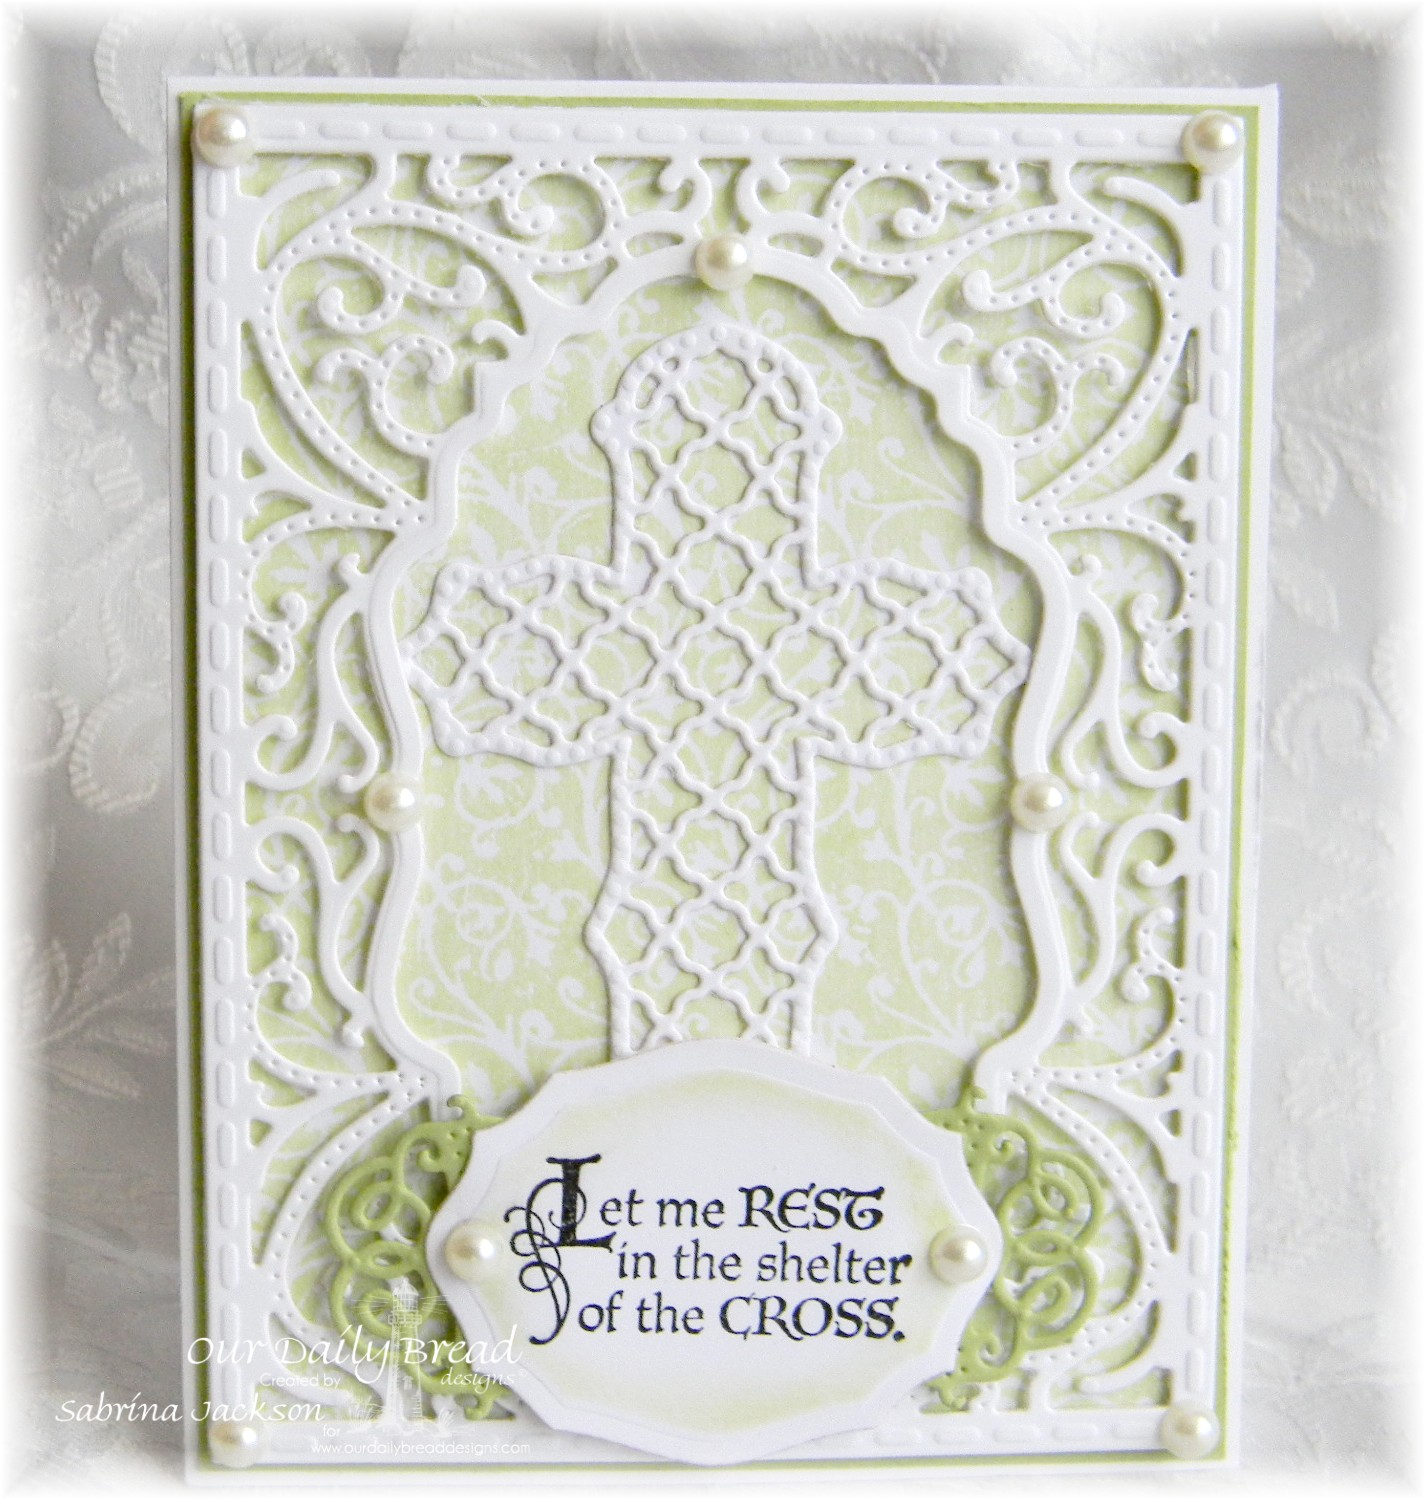 Stamps - Our Daily Bread Designs Chalkboard Vine BG, The Cross, ODBD Custom Vintage Flourish Pattern, ODBD Custom Ornamental Crosses Die, ODBD Elegant Ovals Die